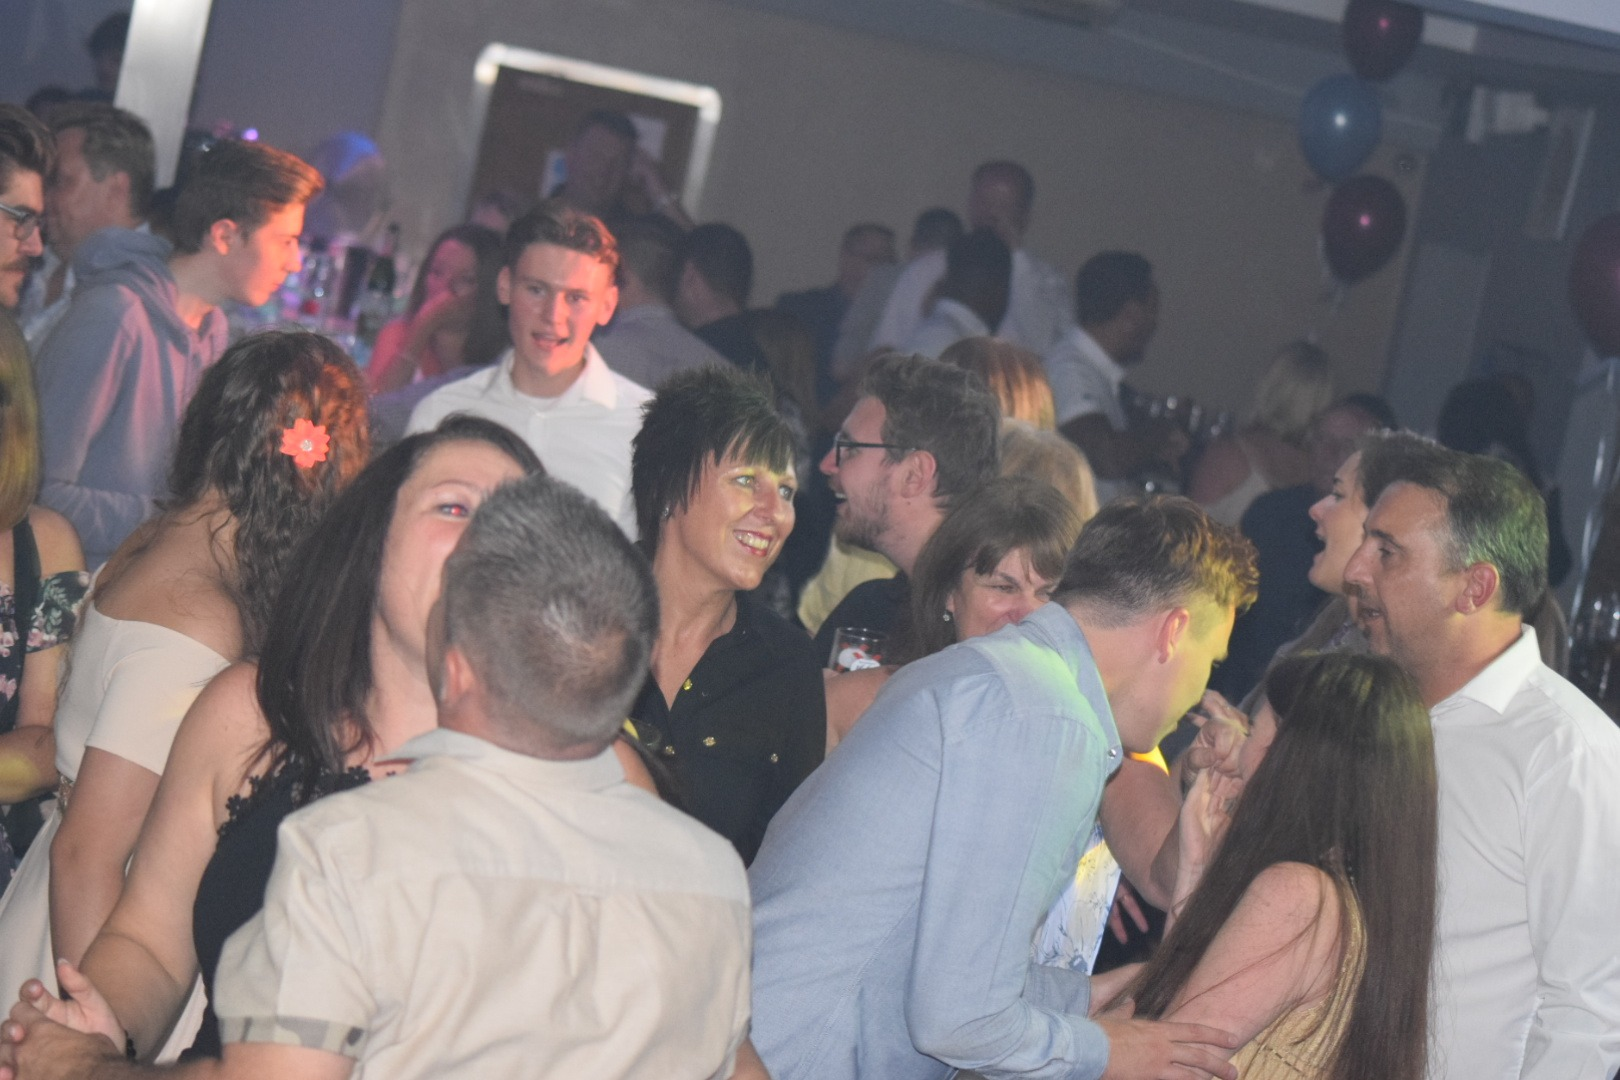 Another Packed Dance Floor !